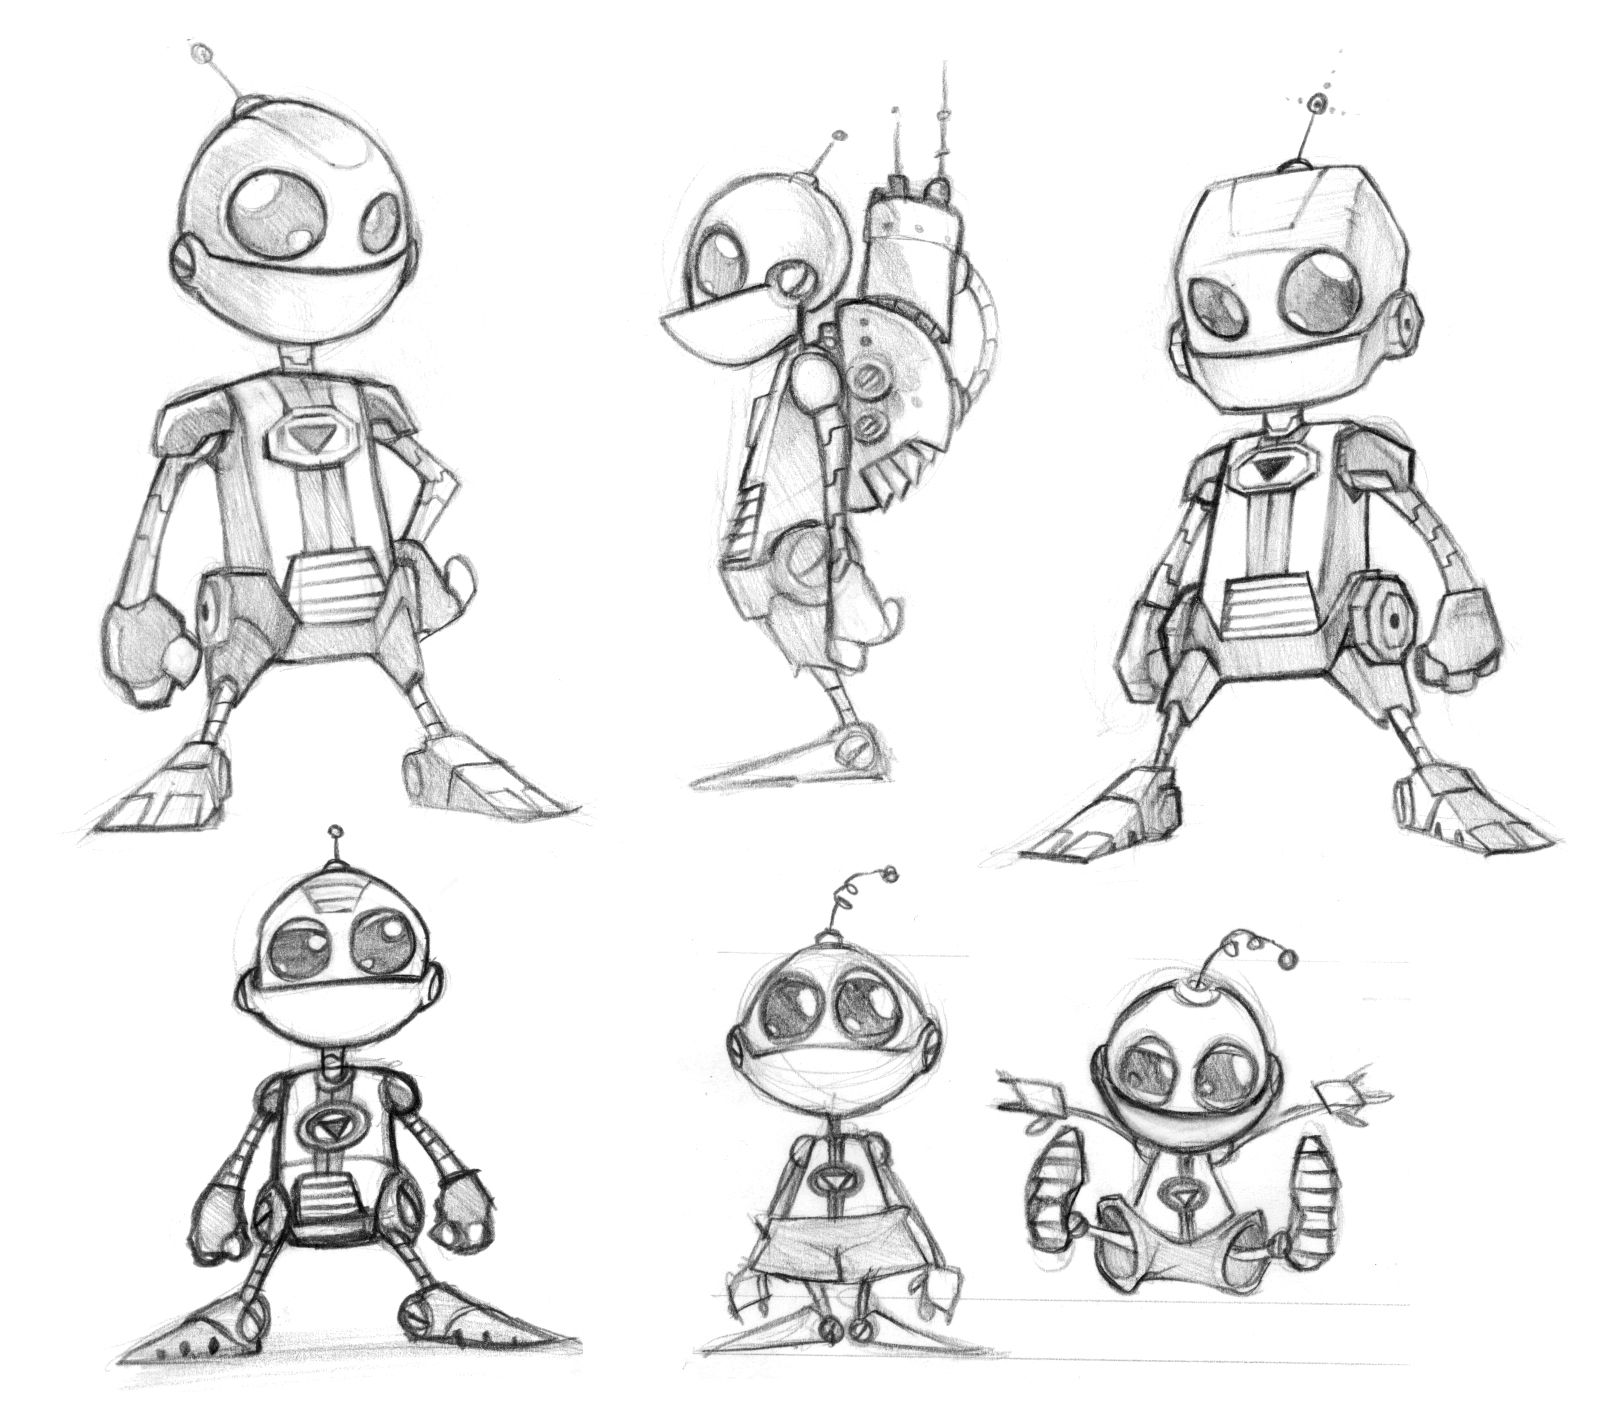 ratchet u0026 clank 10 years of concept art insomniac games